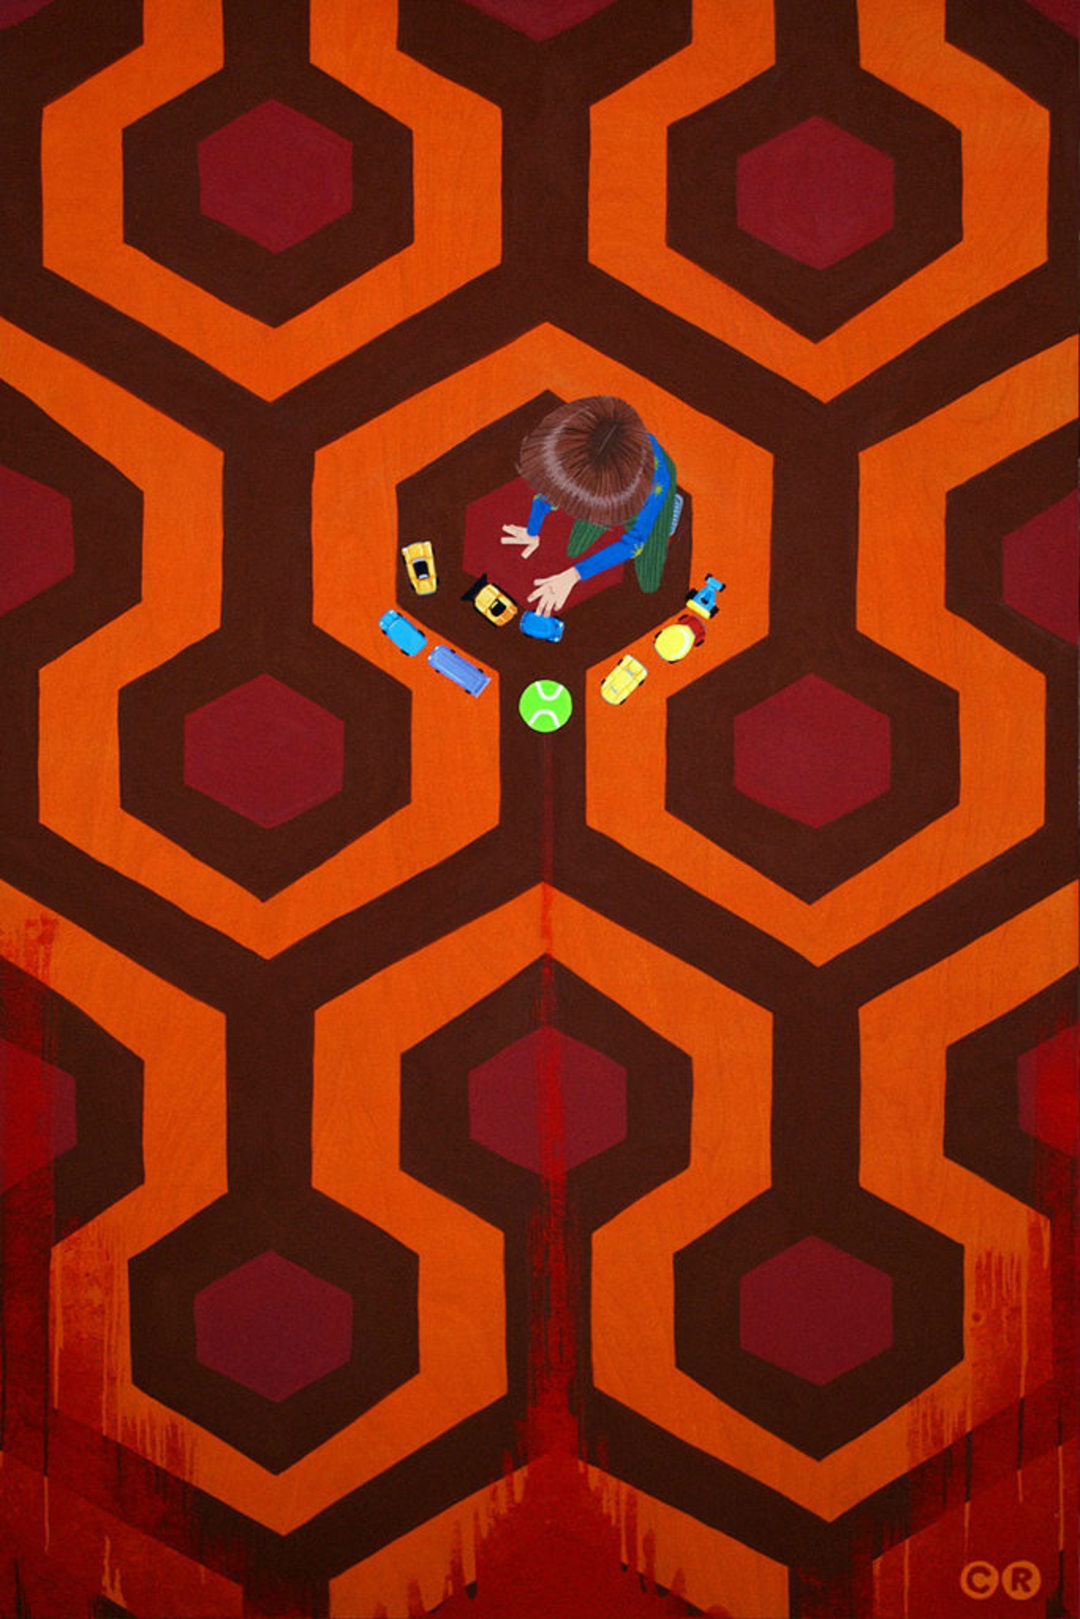 Room 237 Explores The Hidden Meanings Of The Shining